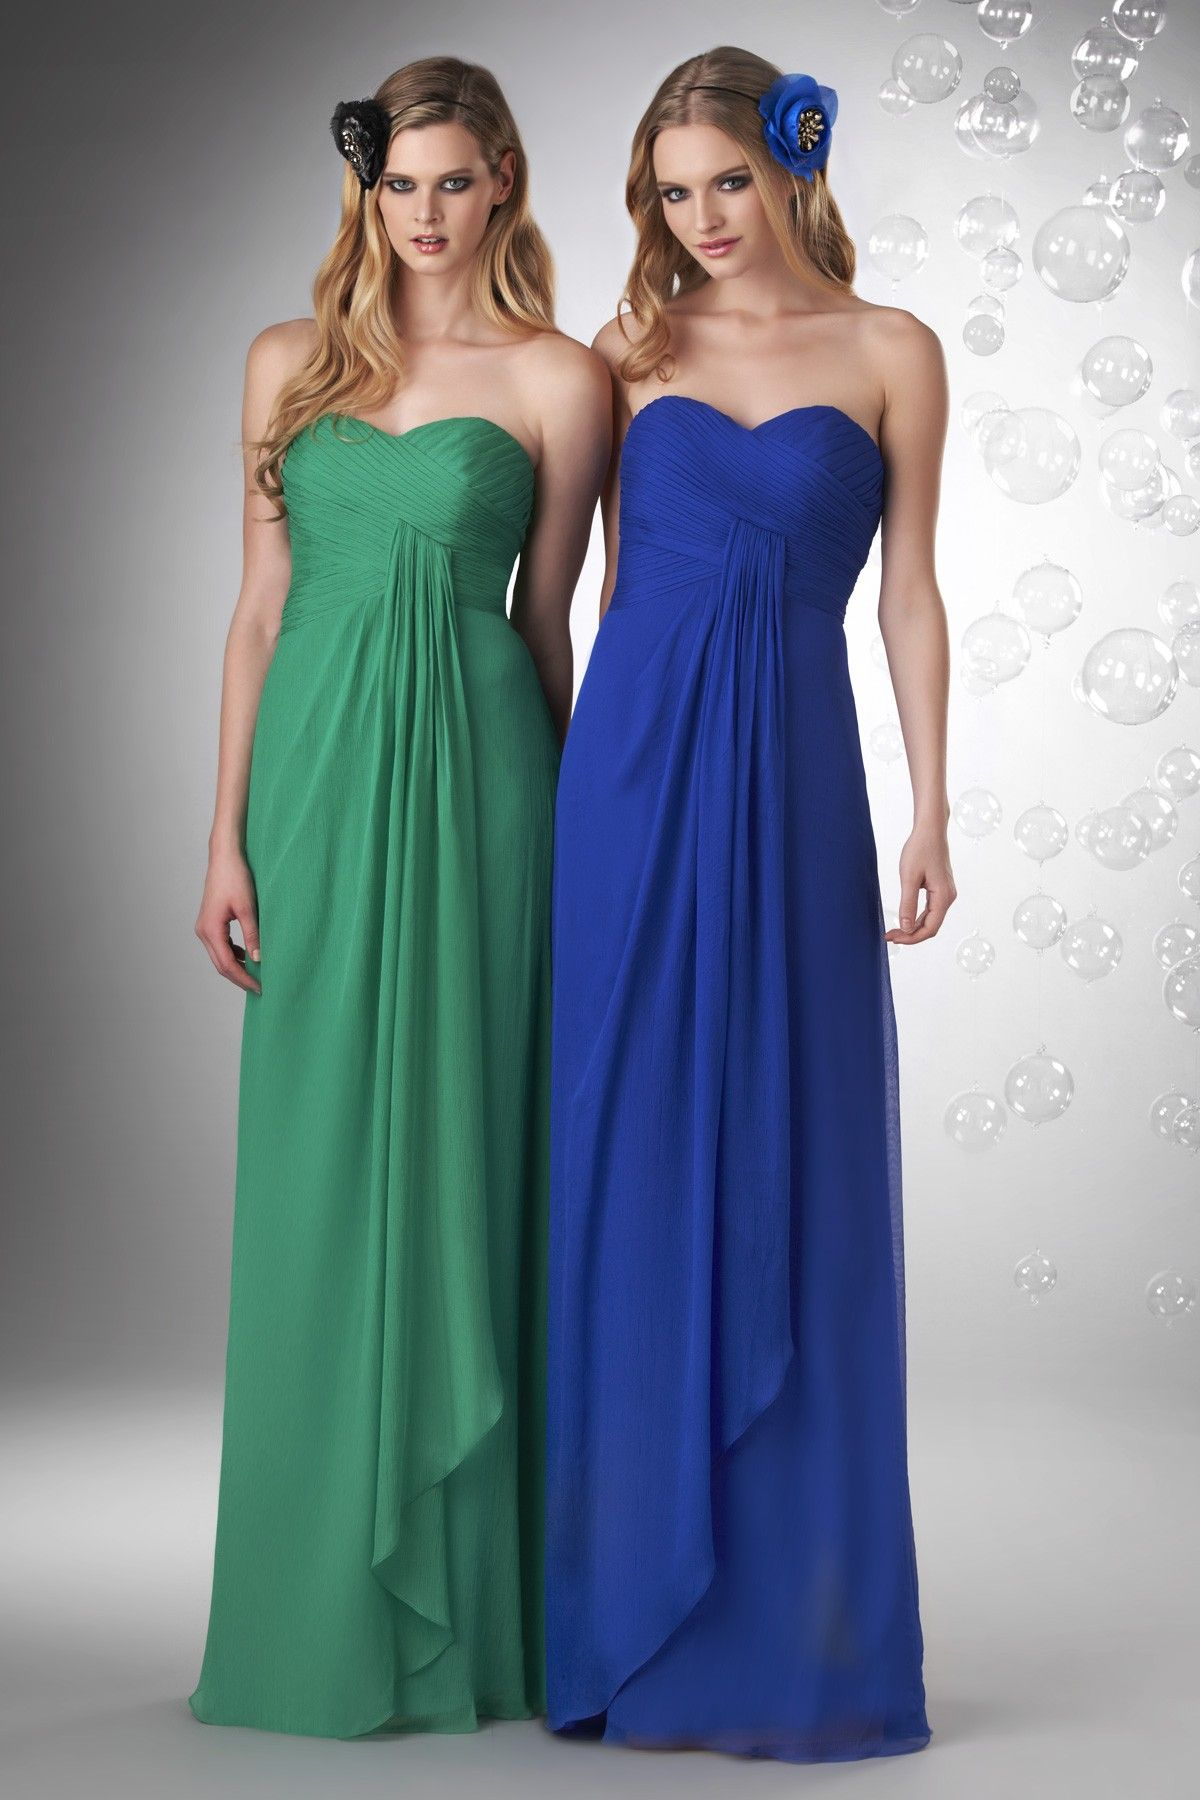 Blue green bridesmaid dresses top 200 blue bridesmaid dresses blue green bridesmaid dresses ombrellifo Gallery